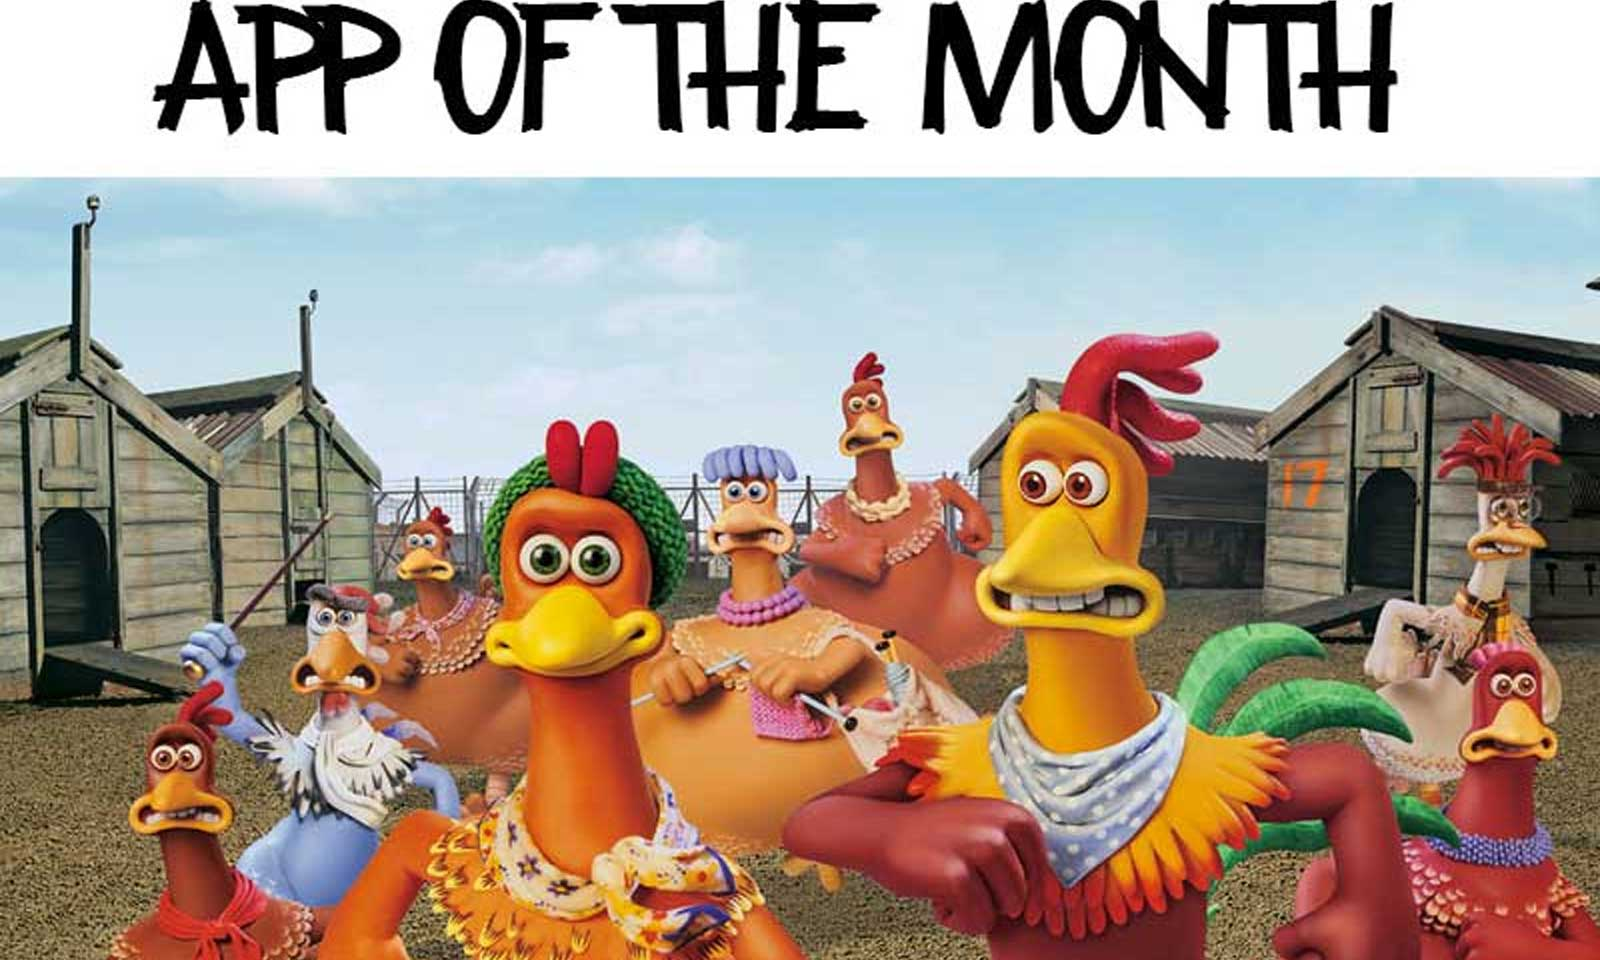 App of the month KFC